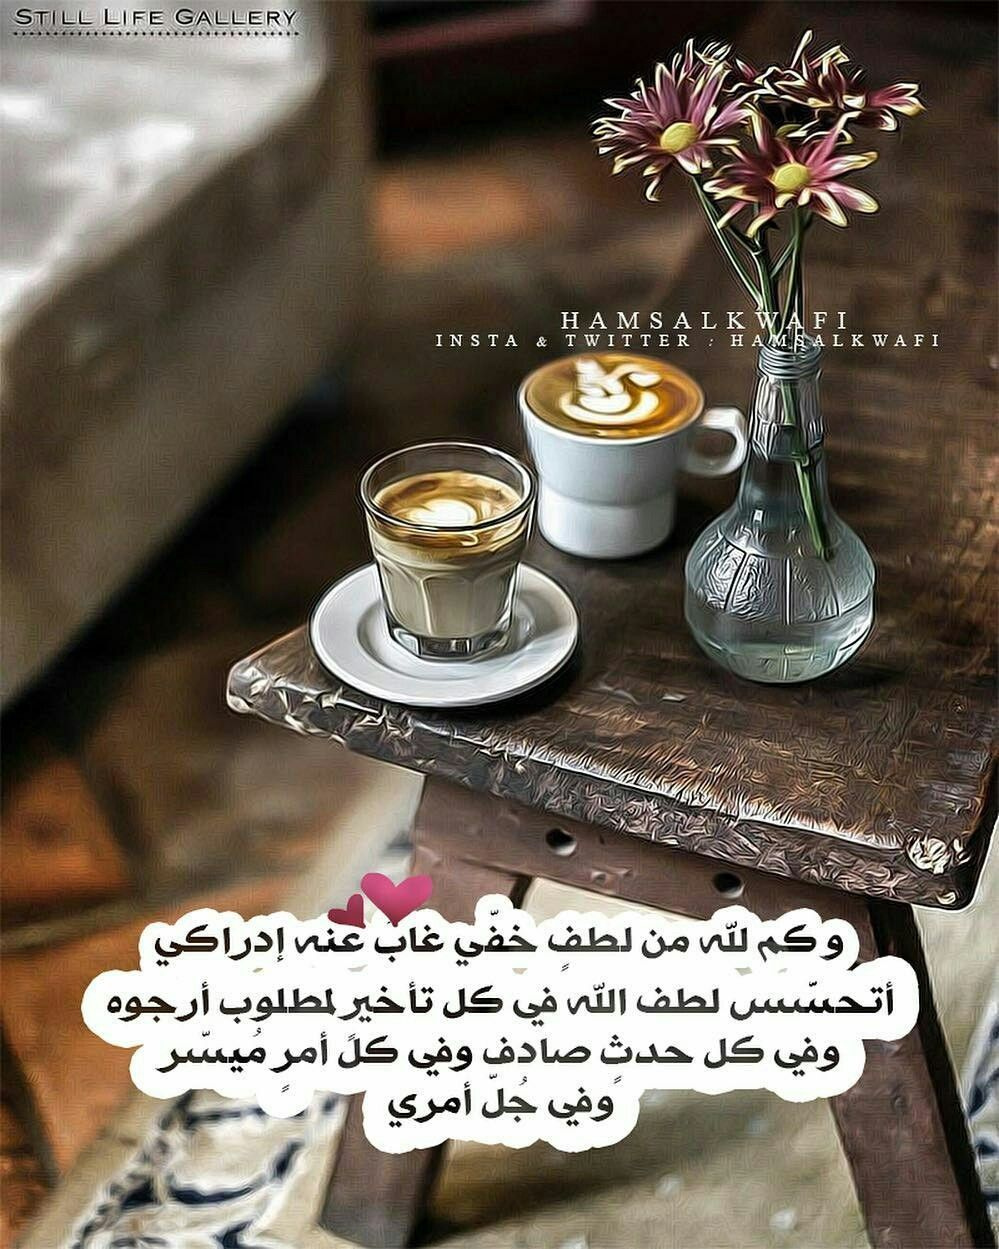 Pin By Haidy On أحبك ربي Arabic Quotes New Beginnings Coincidences